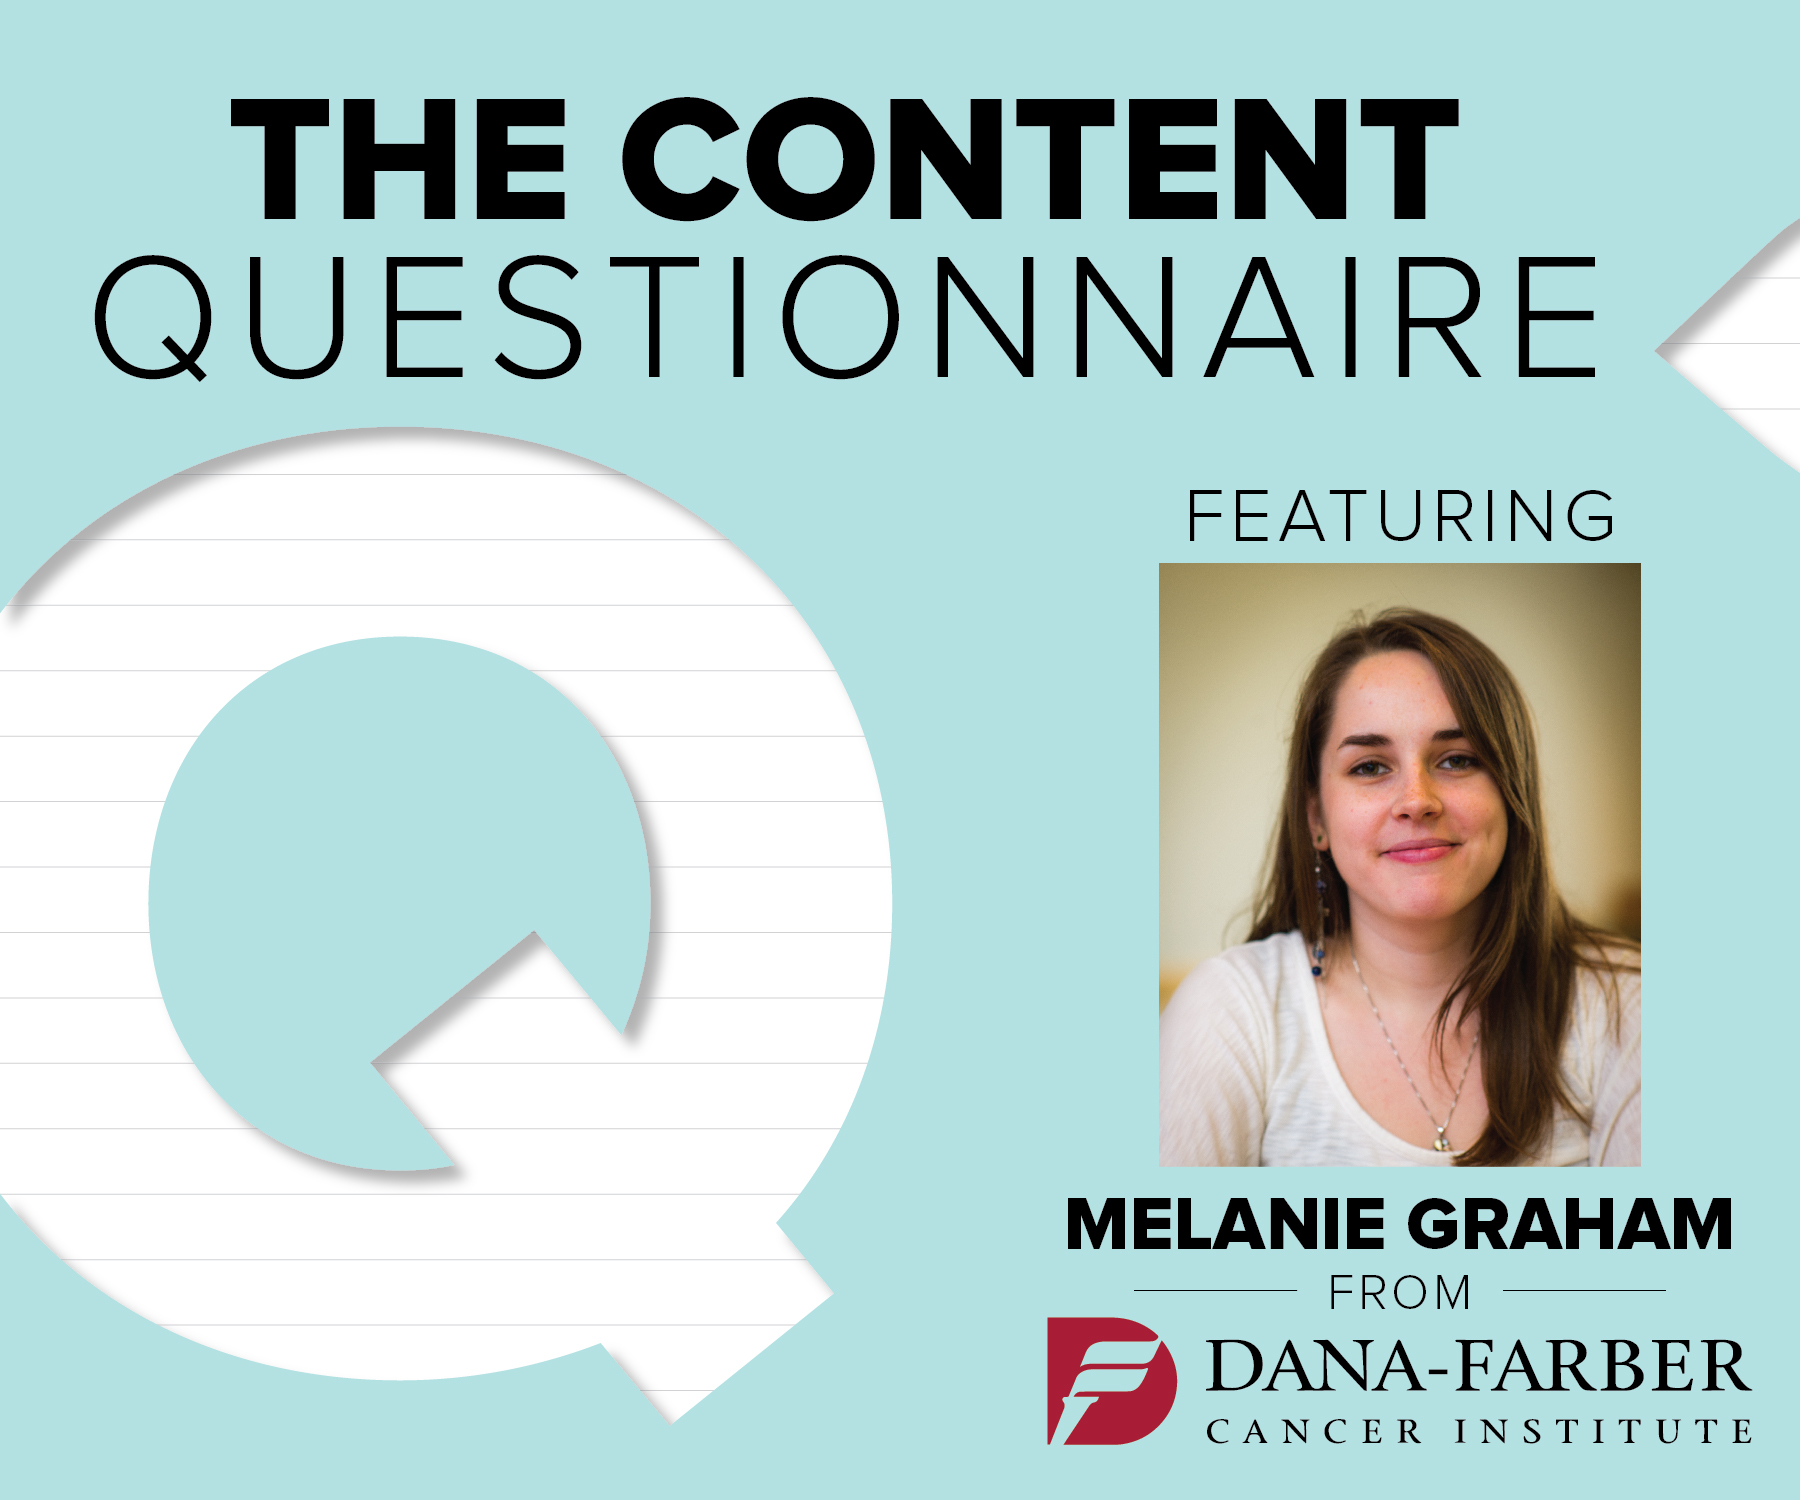 Content Questionnaire with Melanie Graham